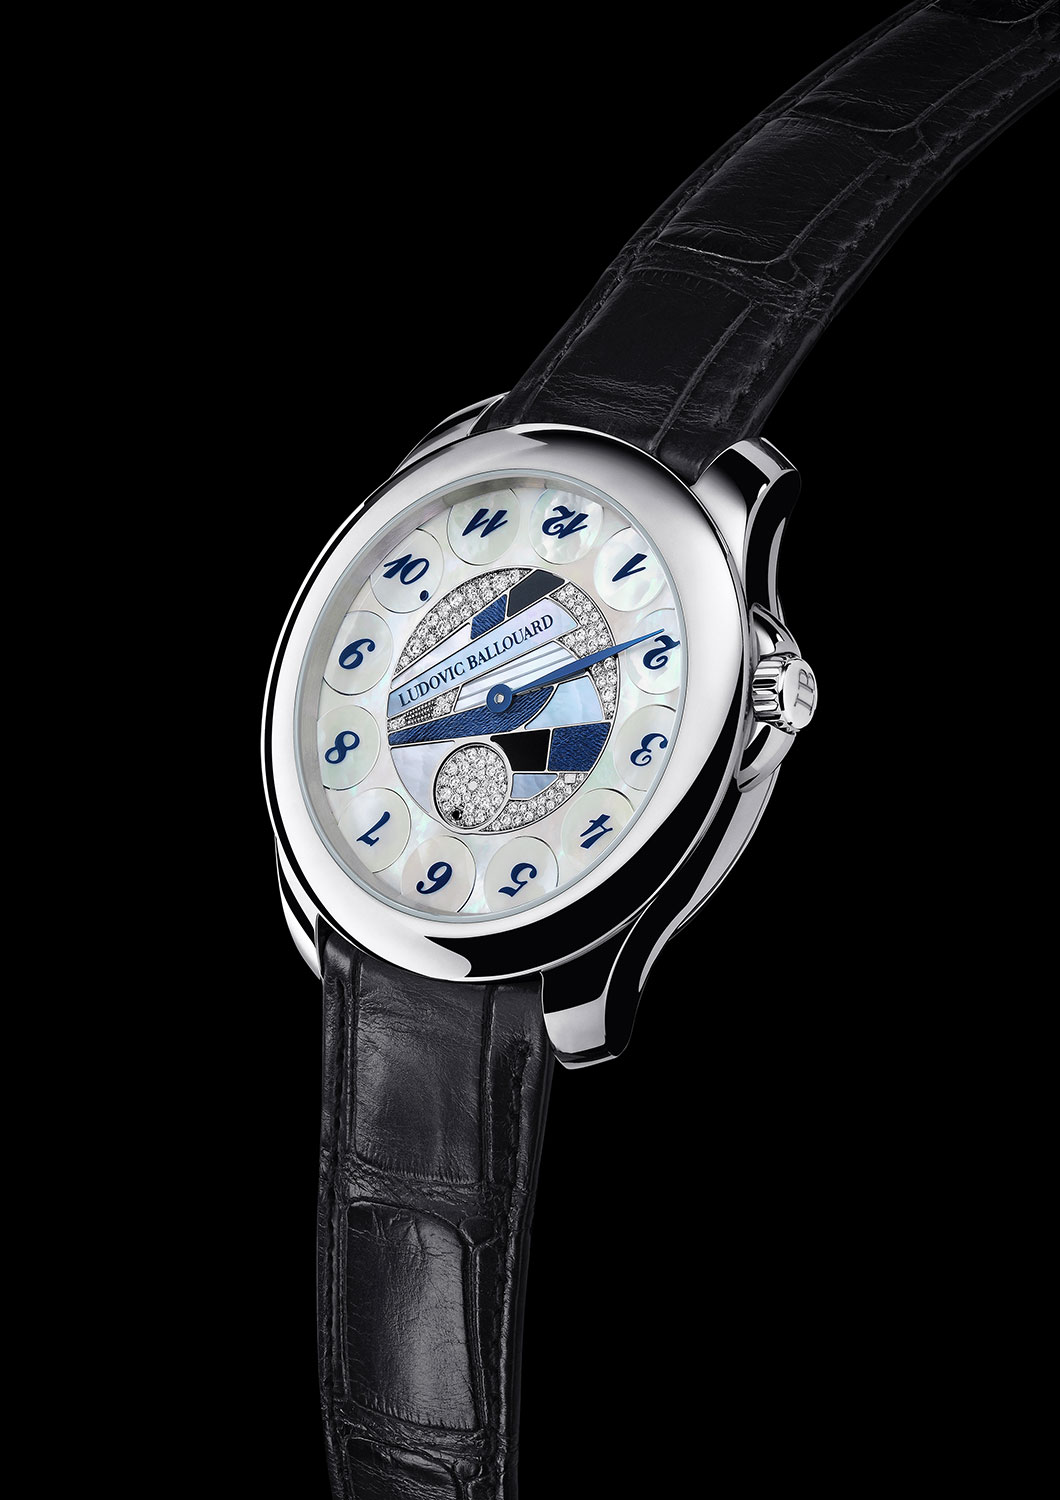 ekso-watches-gallery-montres-luxe-collectionneurs-paris-8e